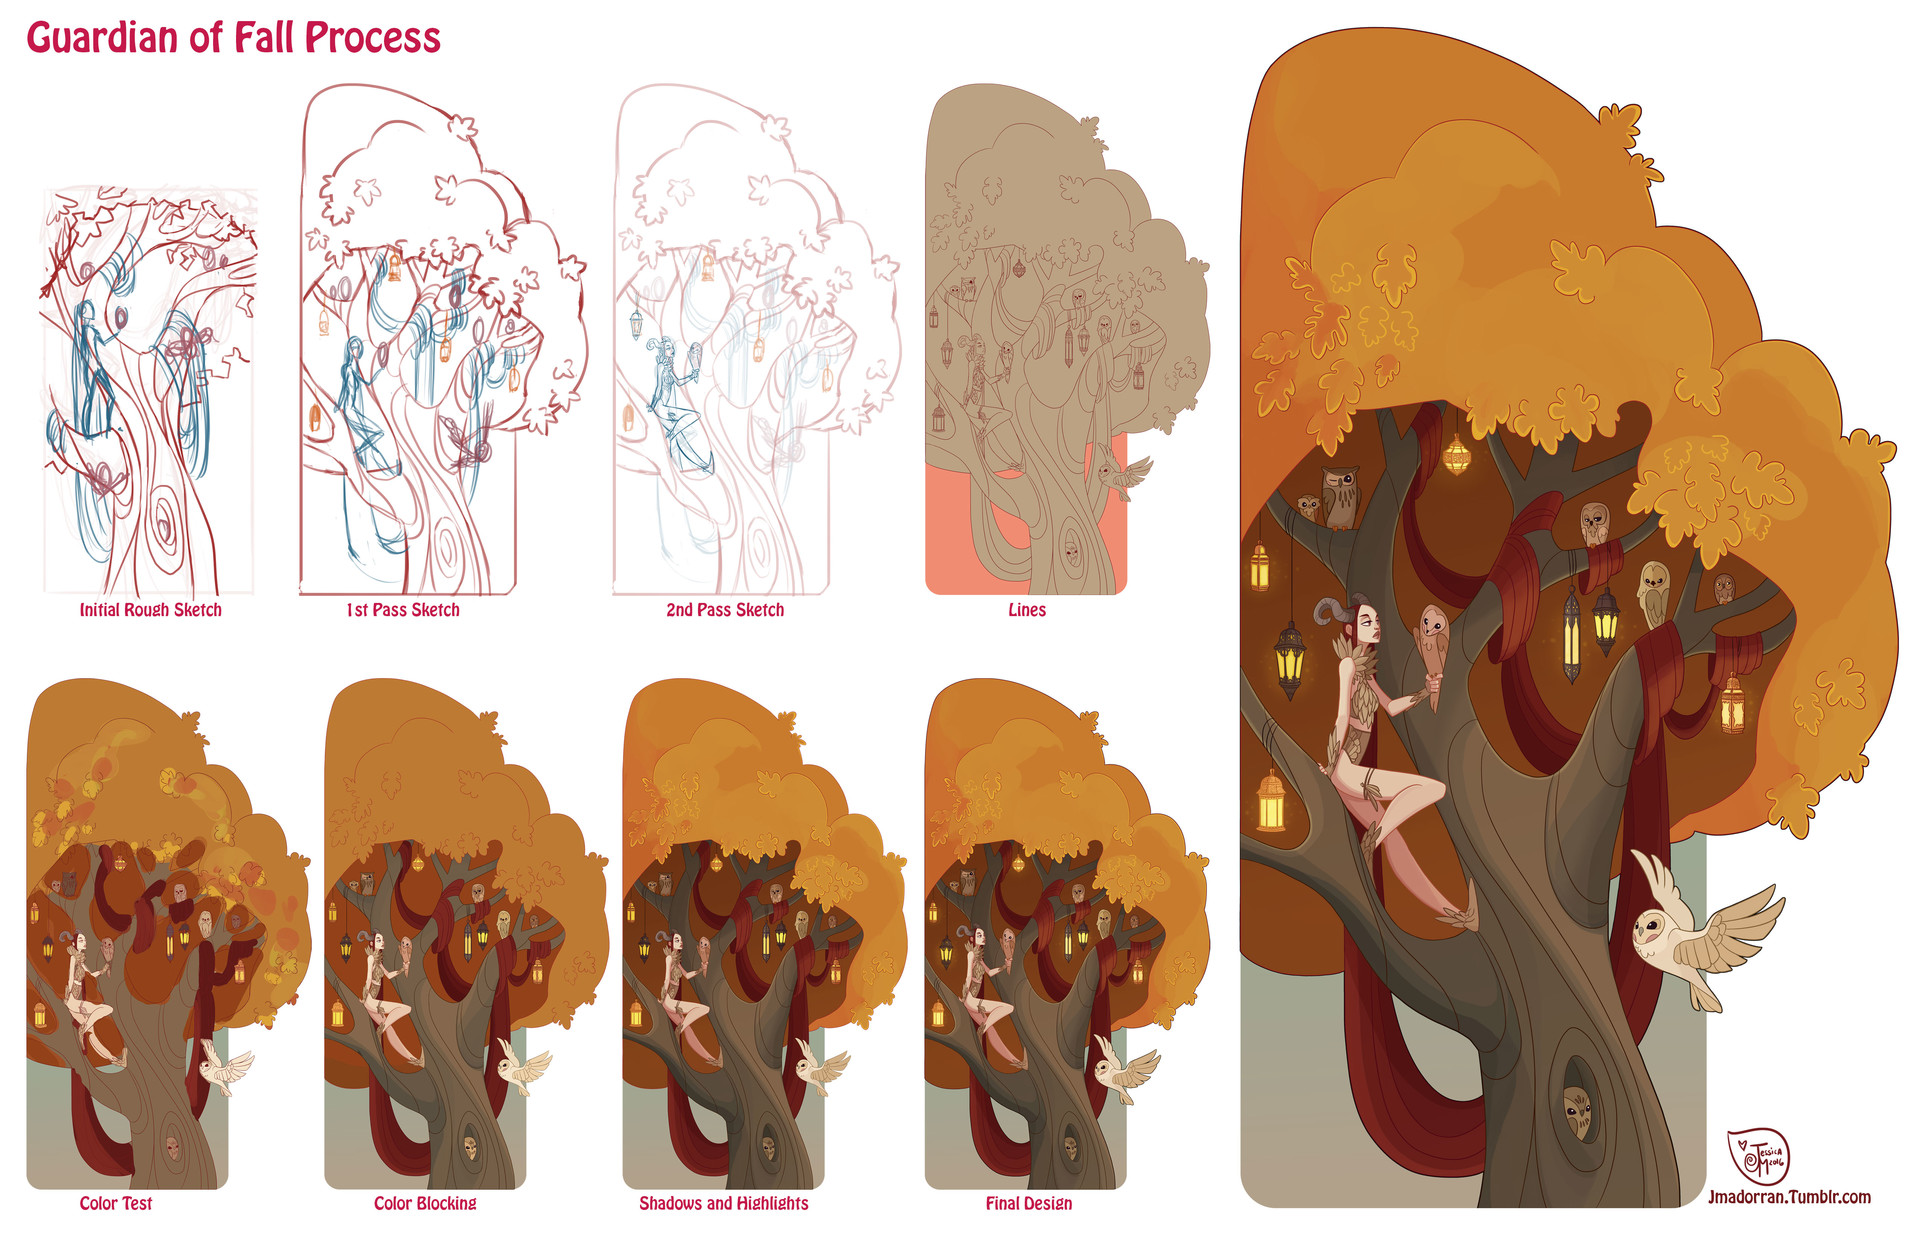 Jessica madorran character design fall tree process 2016